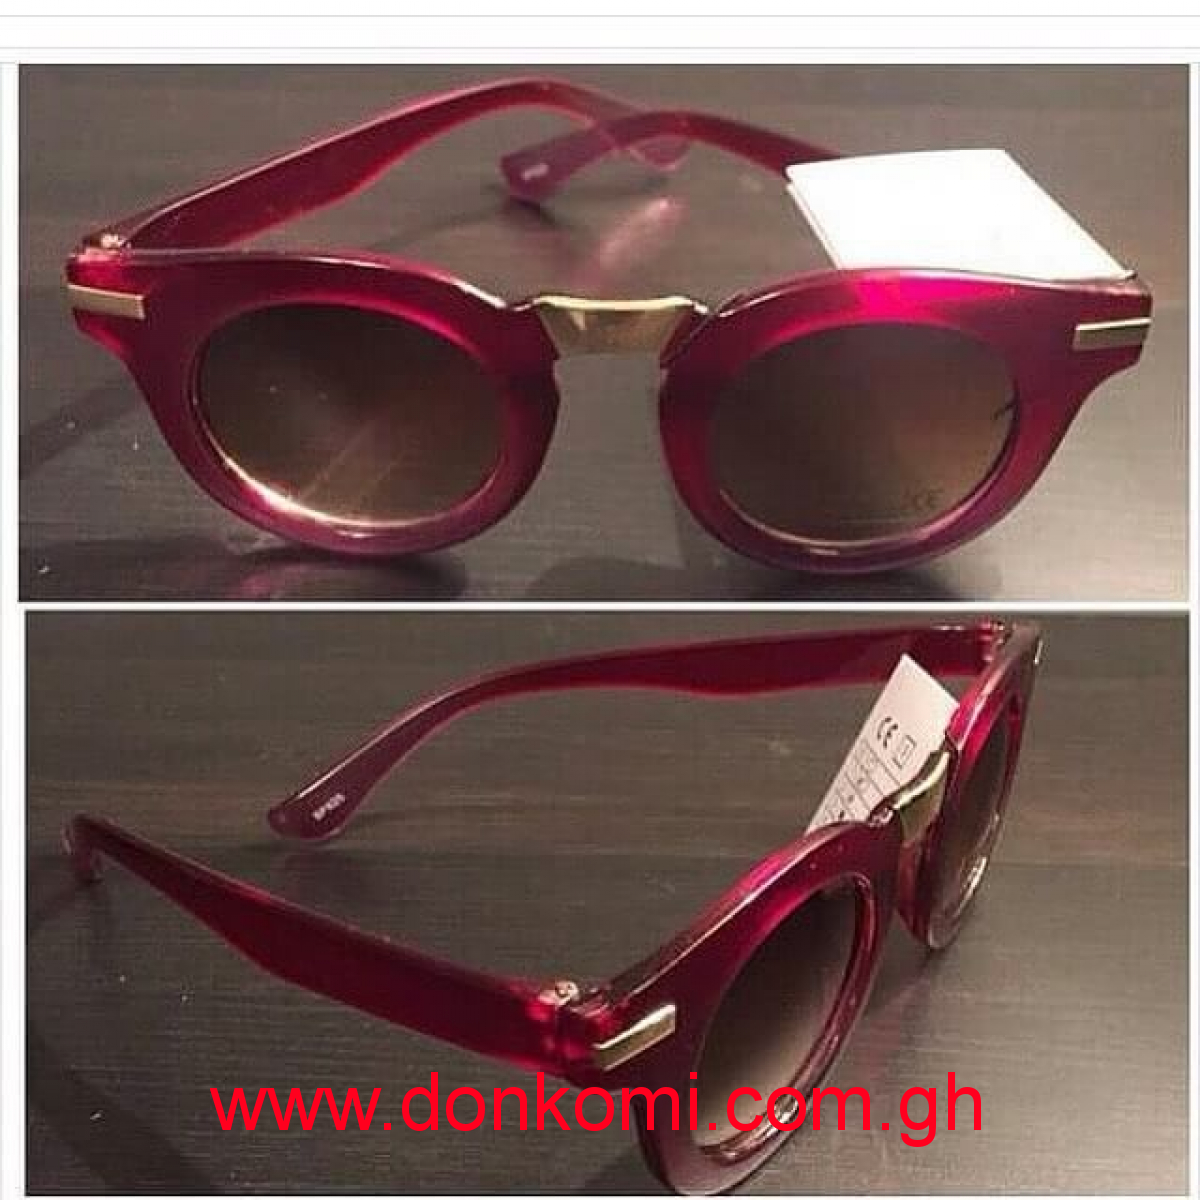 PURPLE SUNNIES WITH GOLD DETAILS (CODE -C7A3)